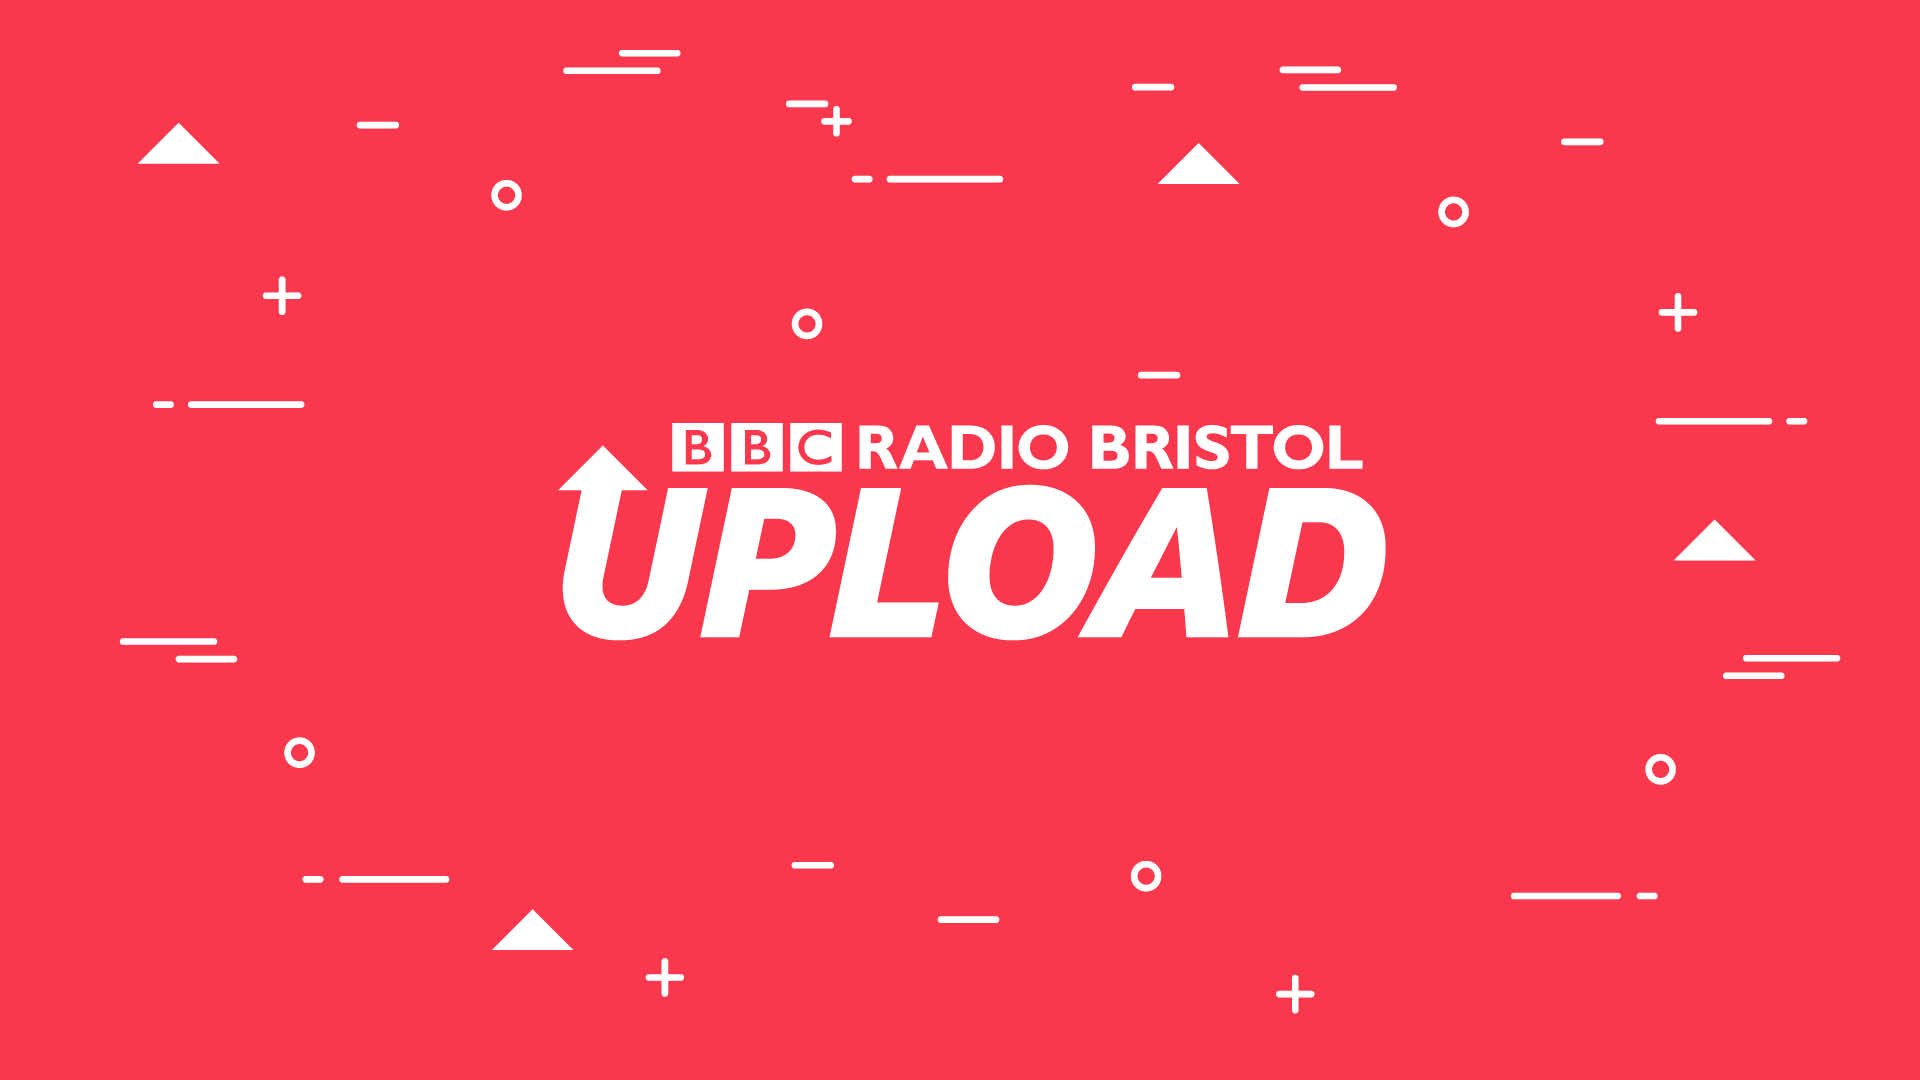 BBC Upload has a strong and vibrant personality - the visual identity was created by graphic designer James Mobbs.